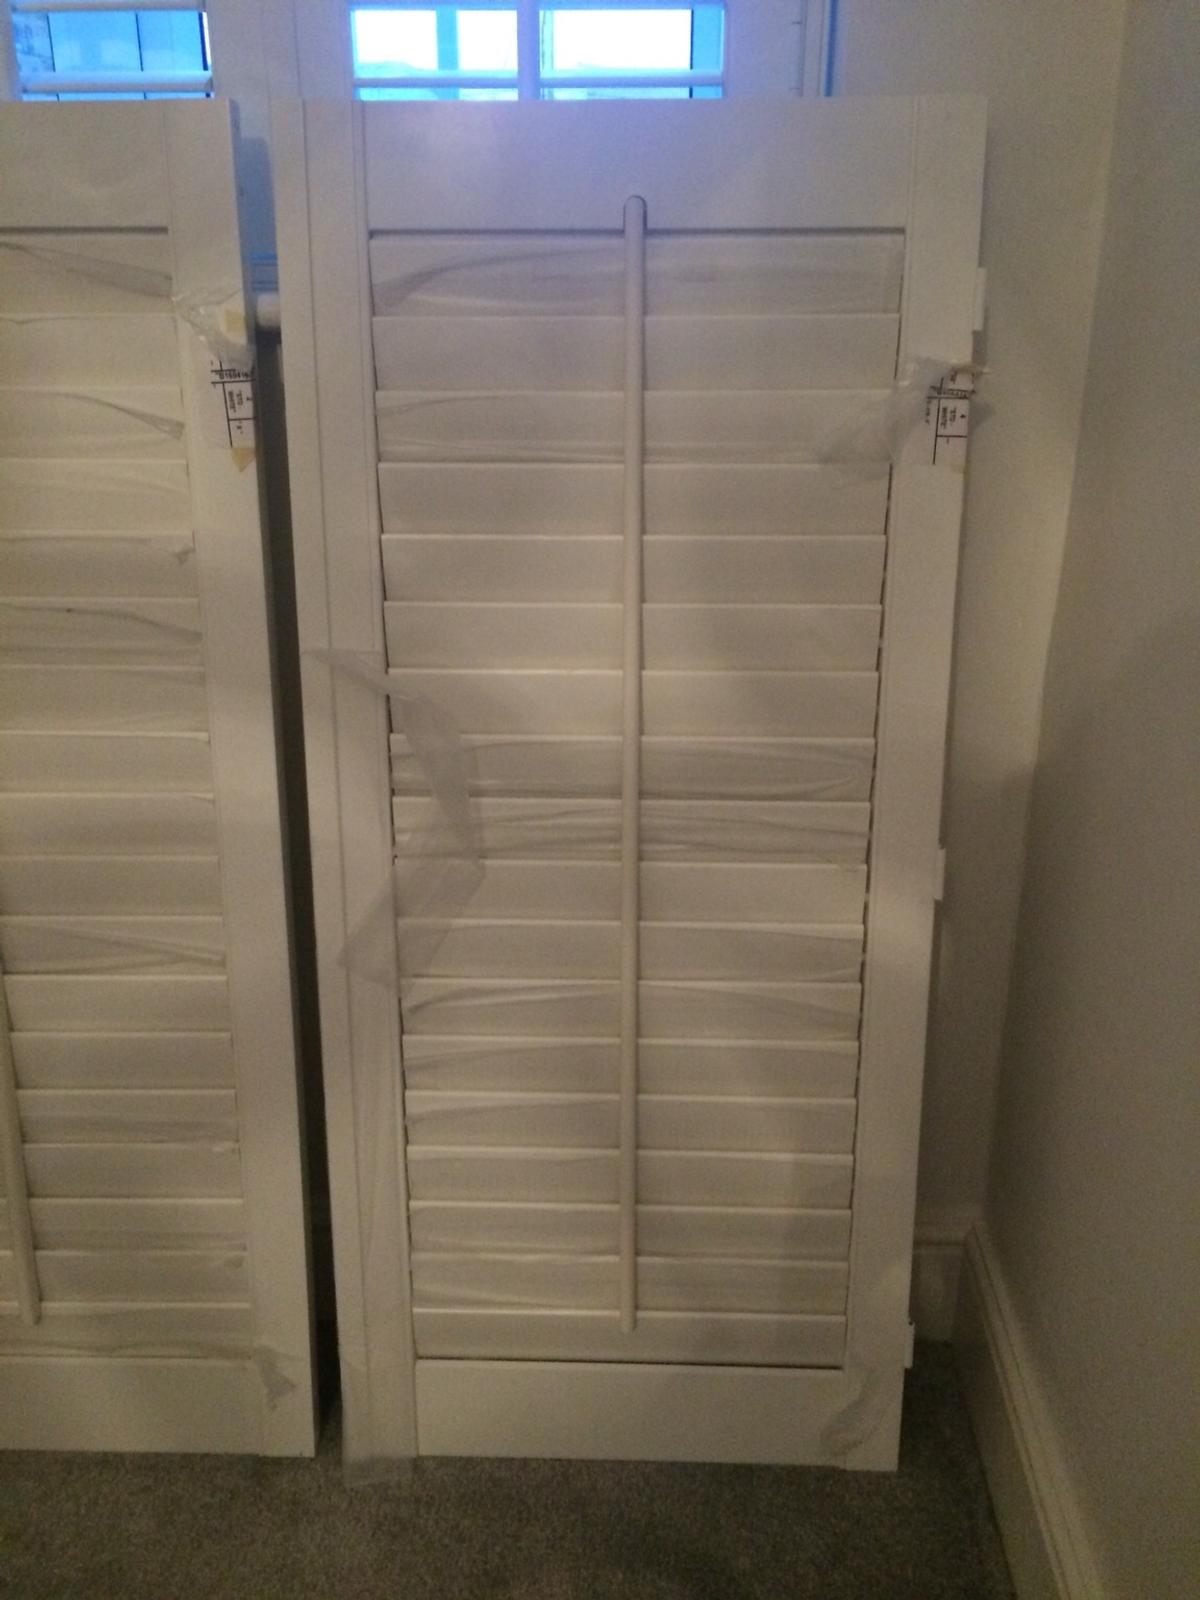 White Shutter Blinds In Me2 Halling For 180 00 For Sale Shpock